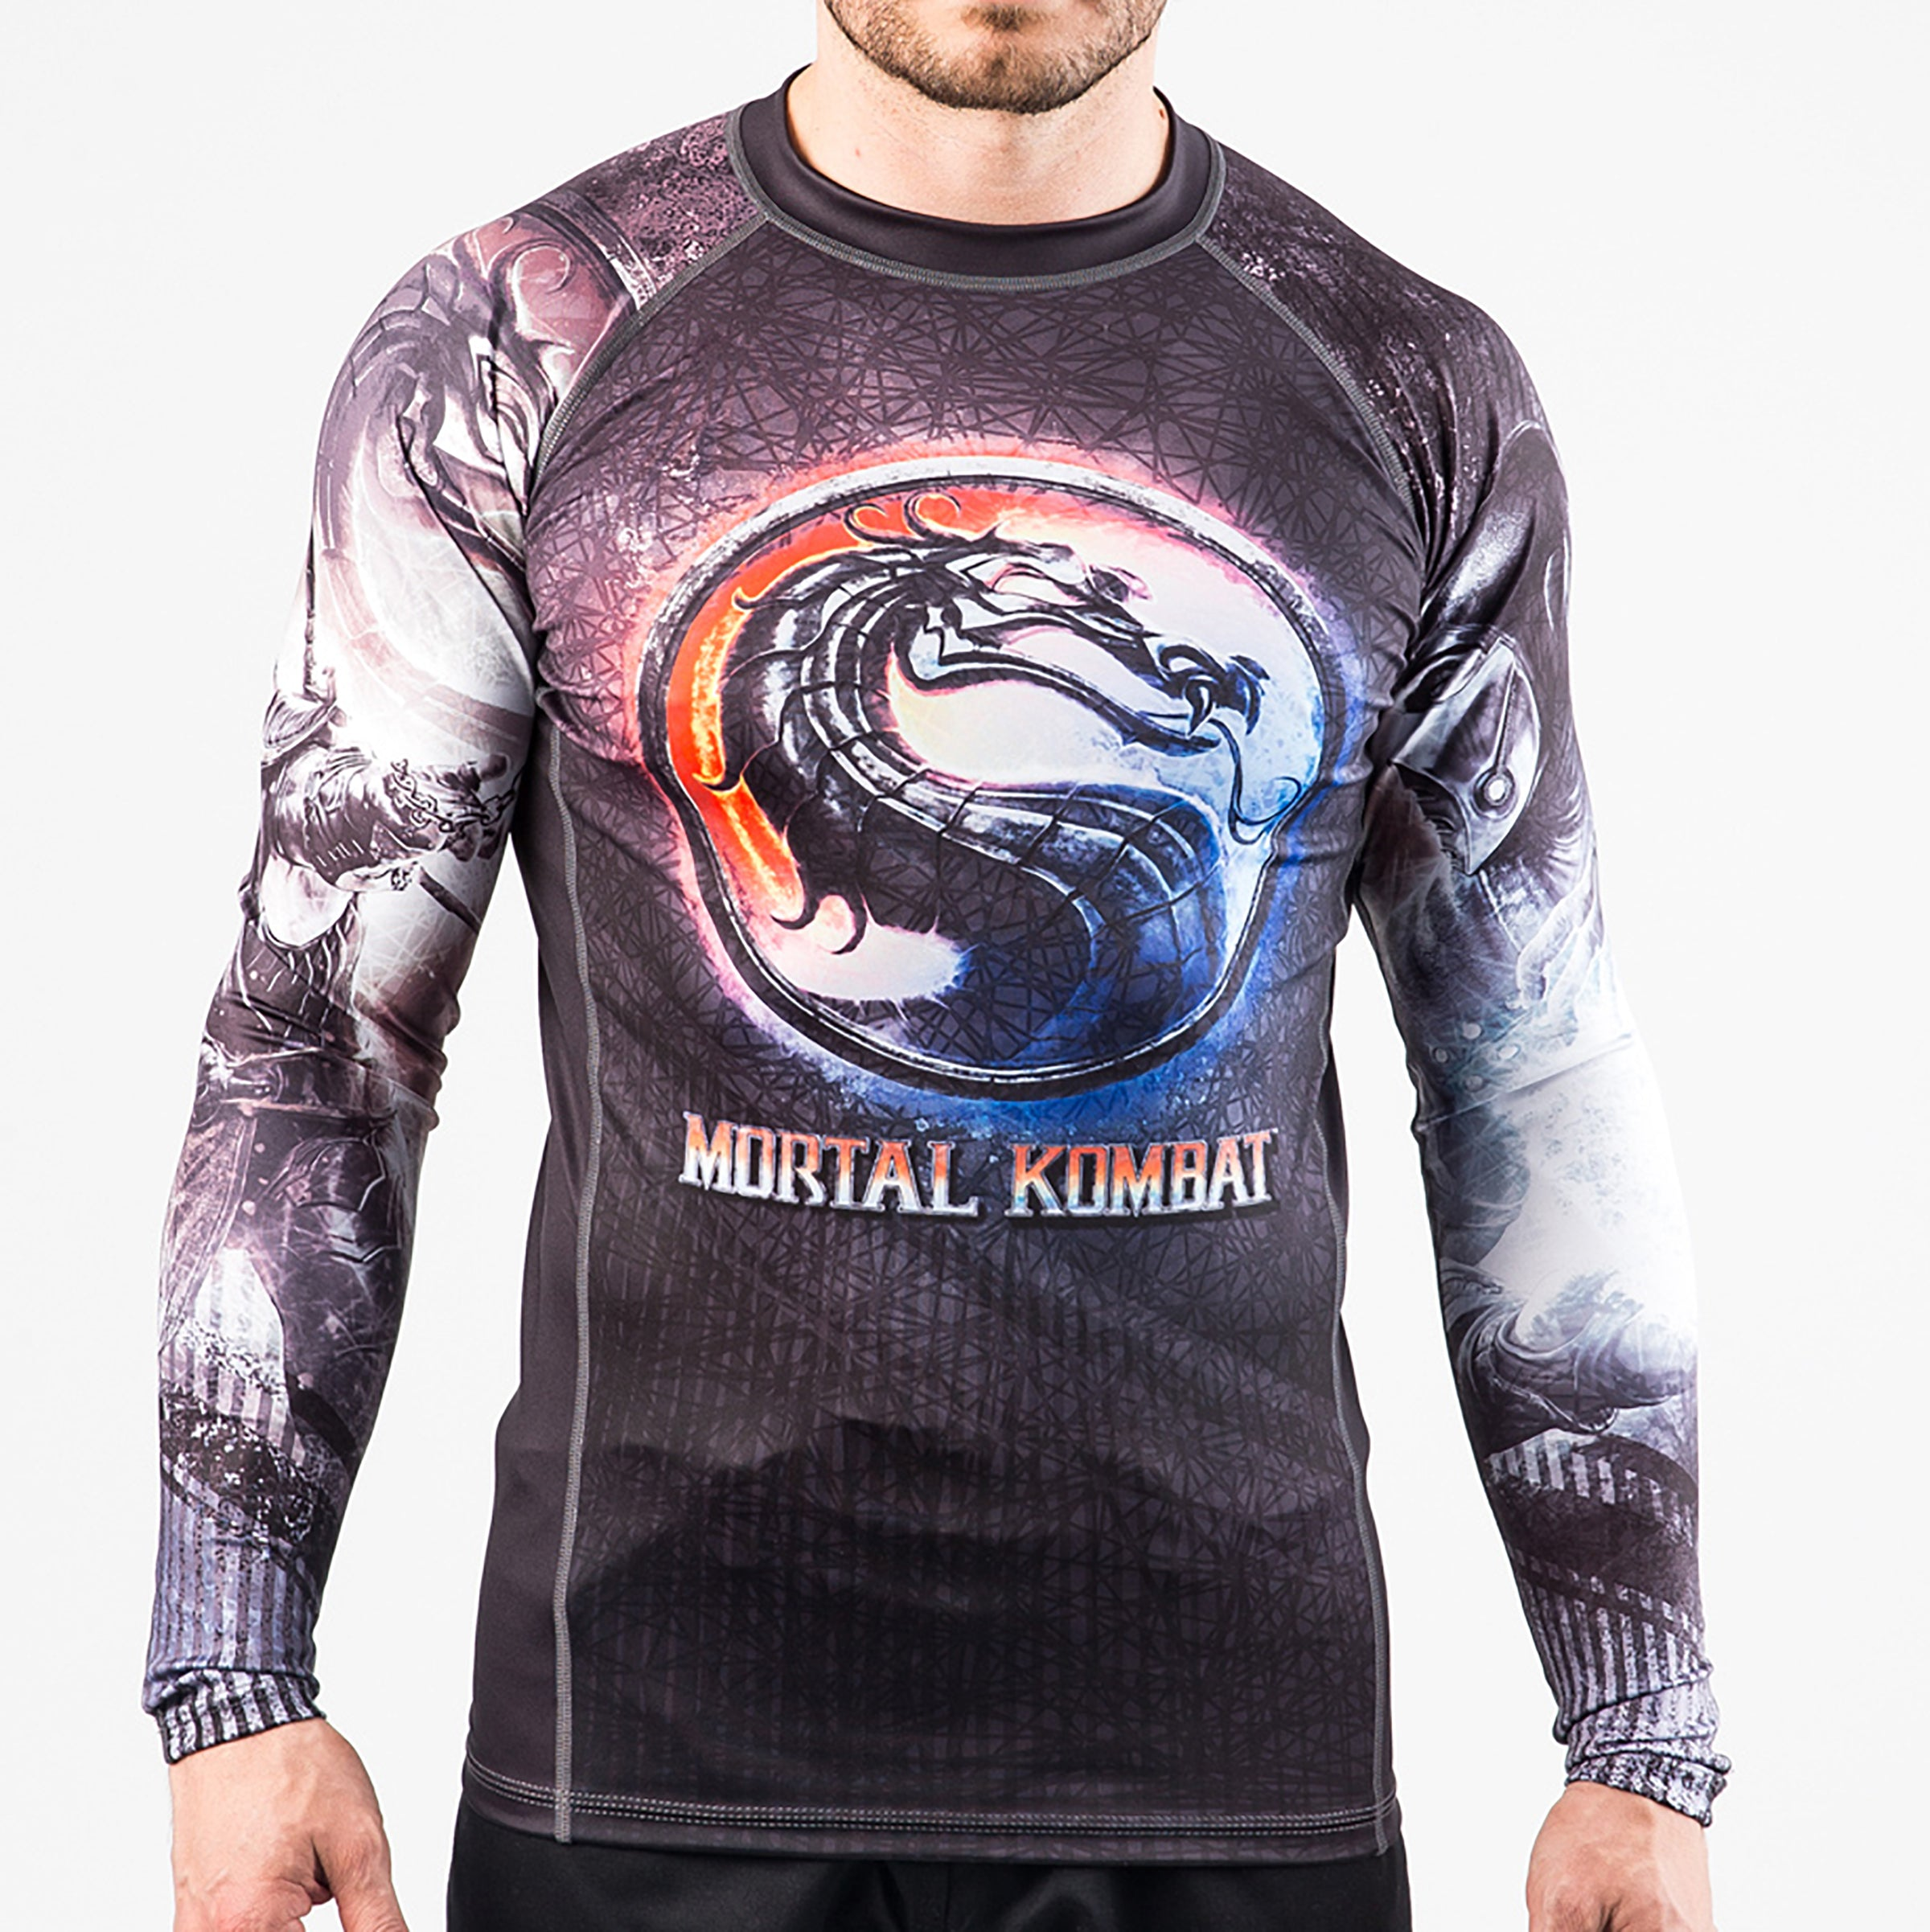 Image of Fusion Fight Gear Mortal Kombat Sub Zero vs Scorpion Rashguard